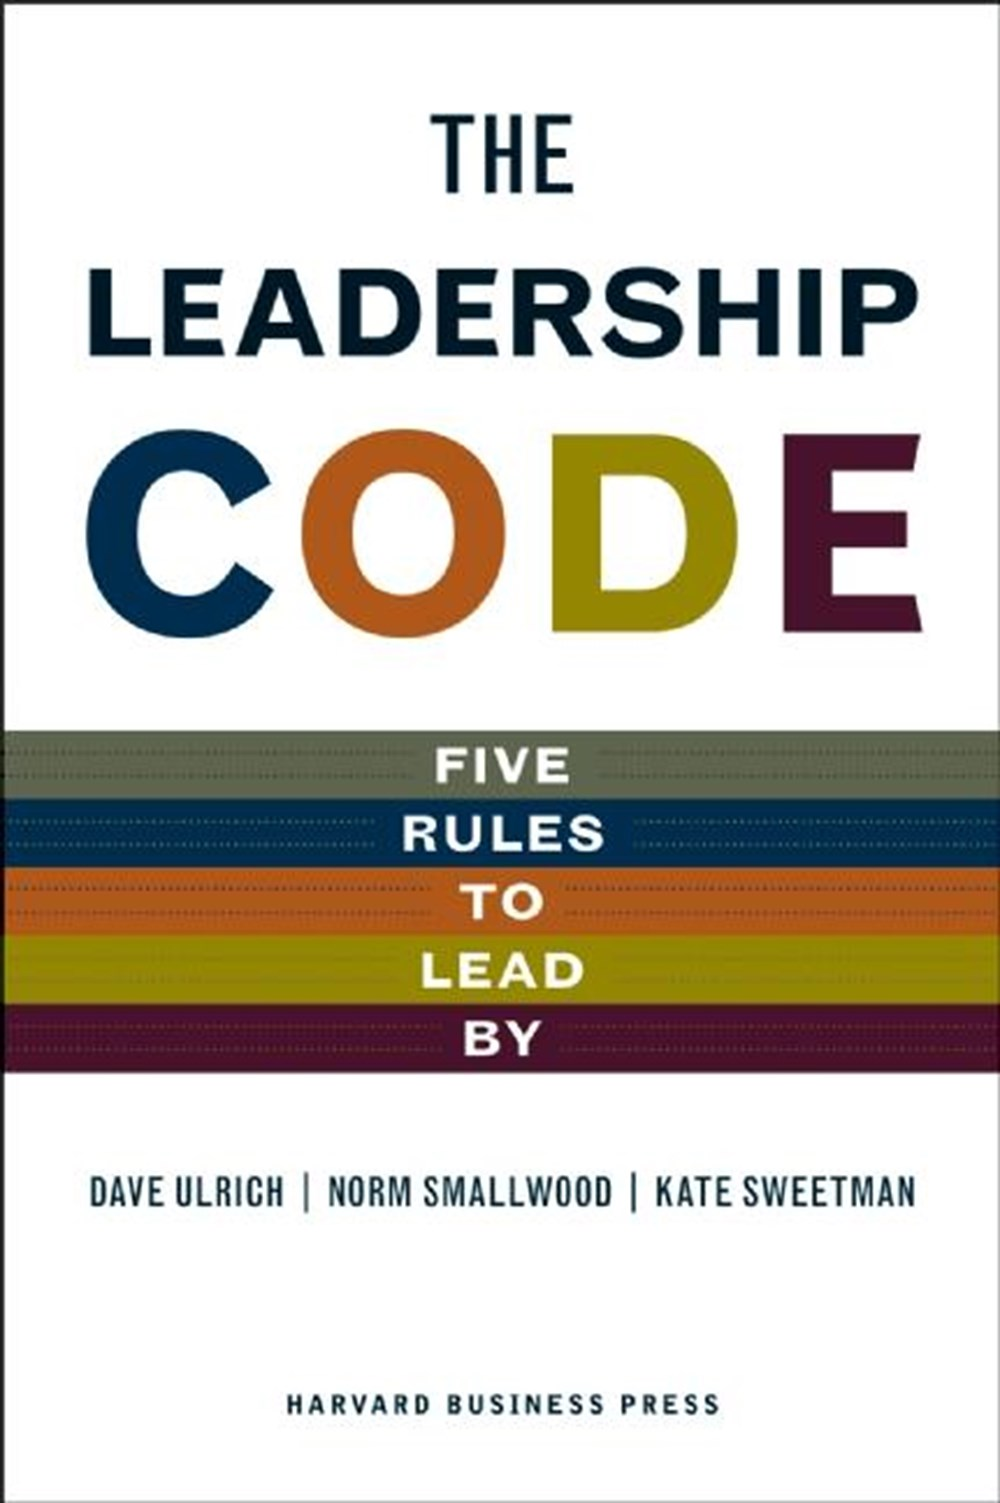 Leadership Code Five Rules to Lead by